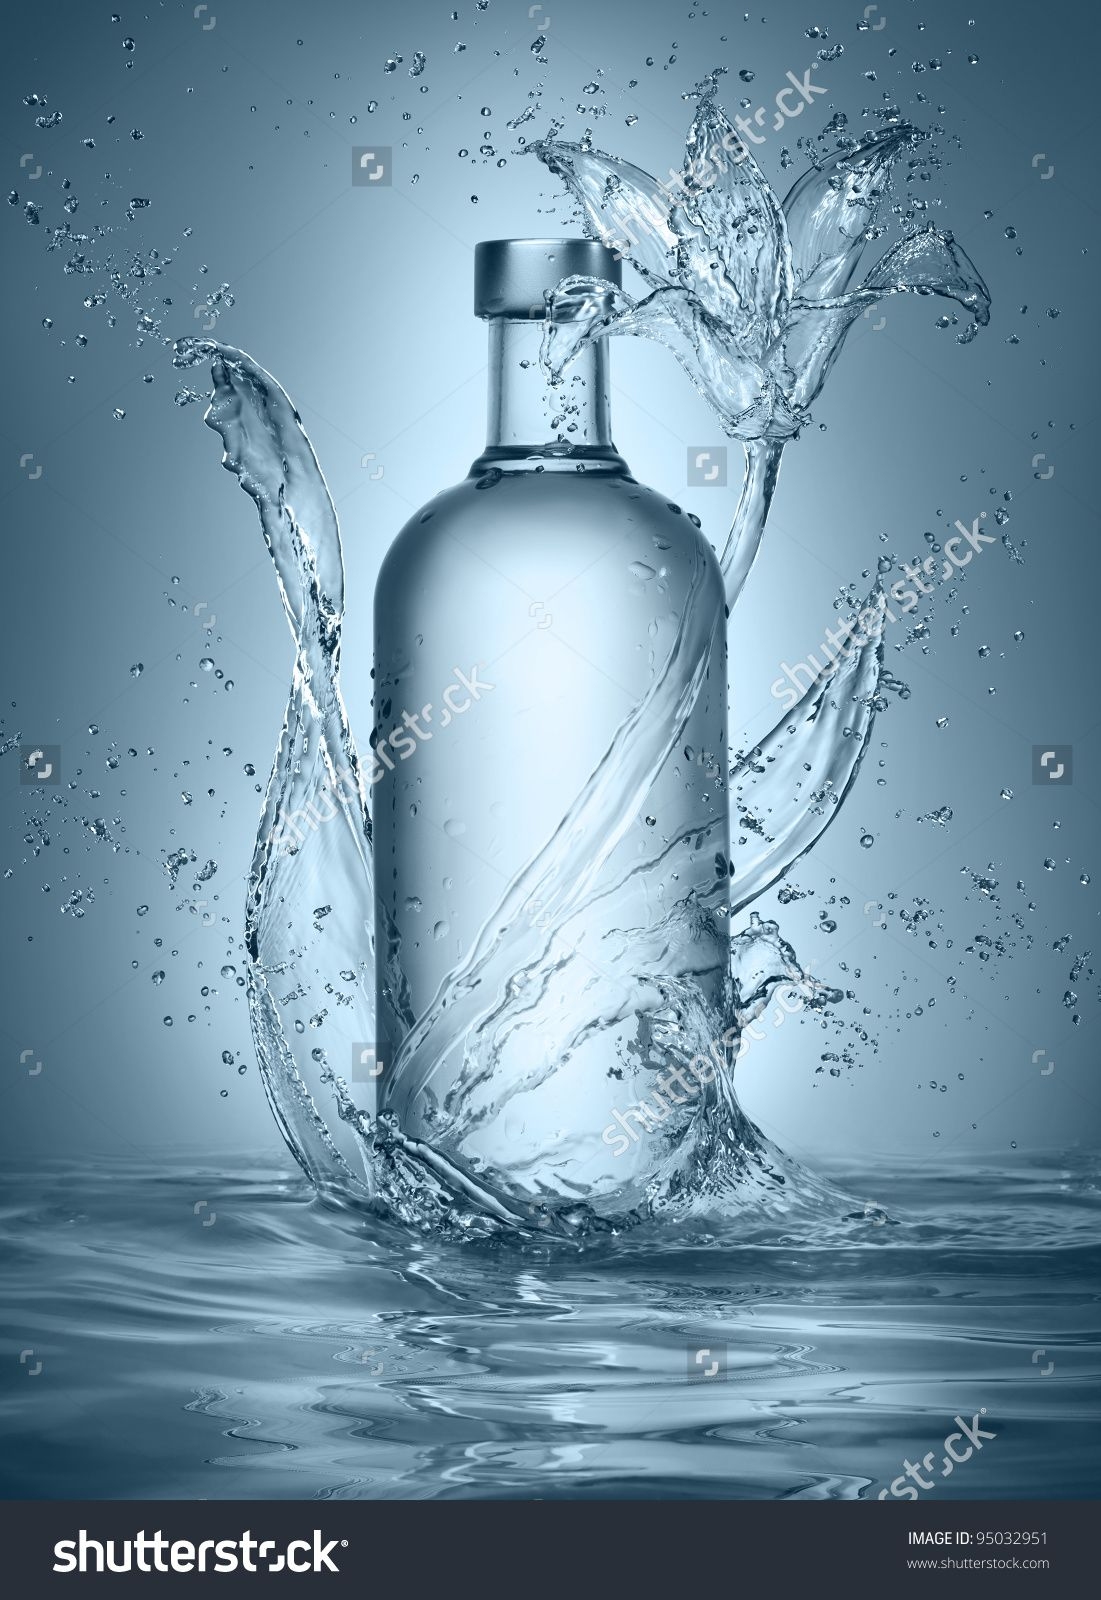 Flower made of water with vodka bottle stock photo 95032951 flower made of water with vodka bottle stock photo 95032951 biocorpaavc